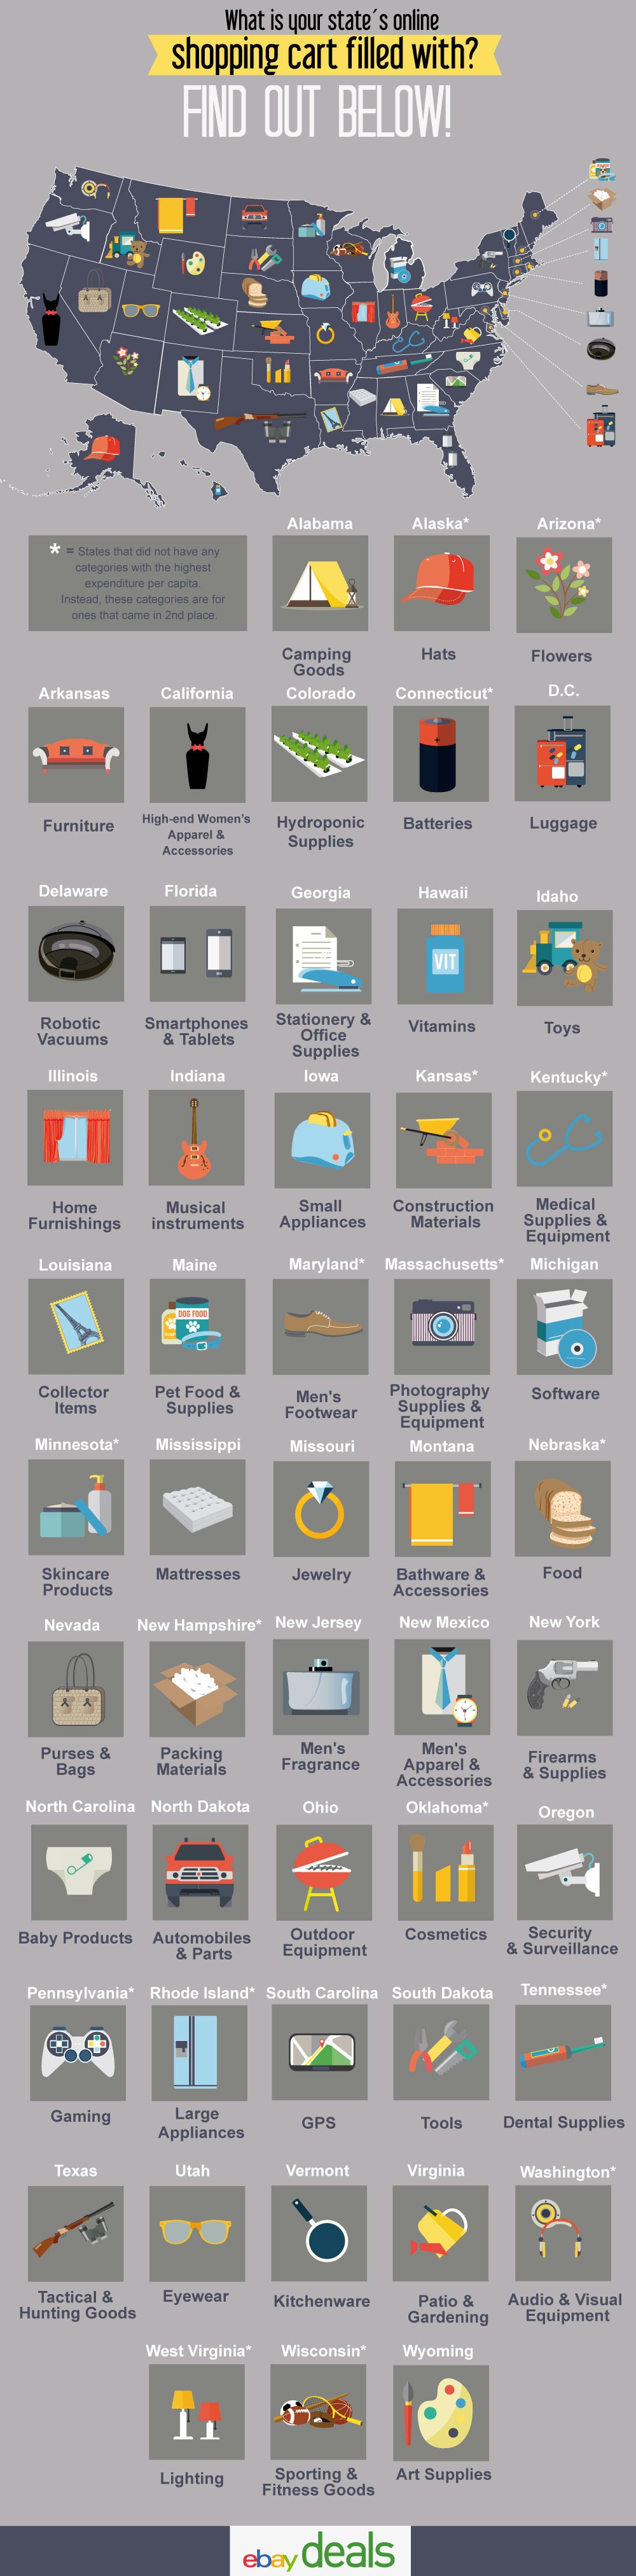 Most Popular Products on eBay by State [INFOGRAPHIC]